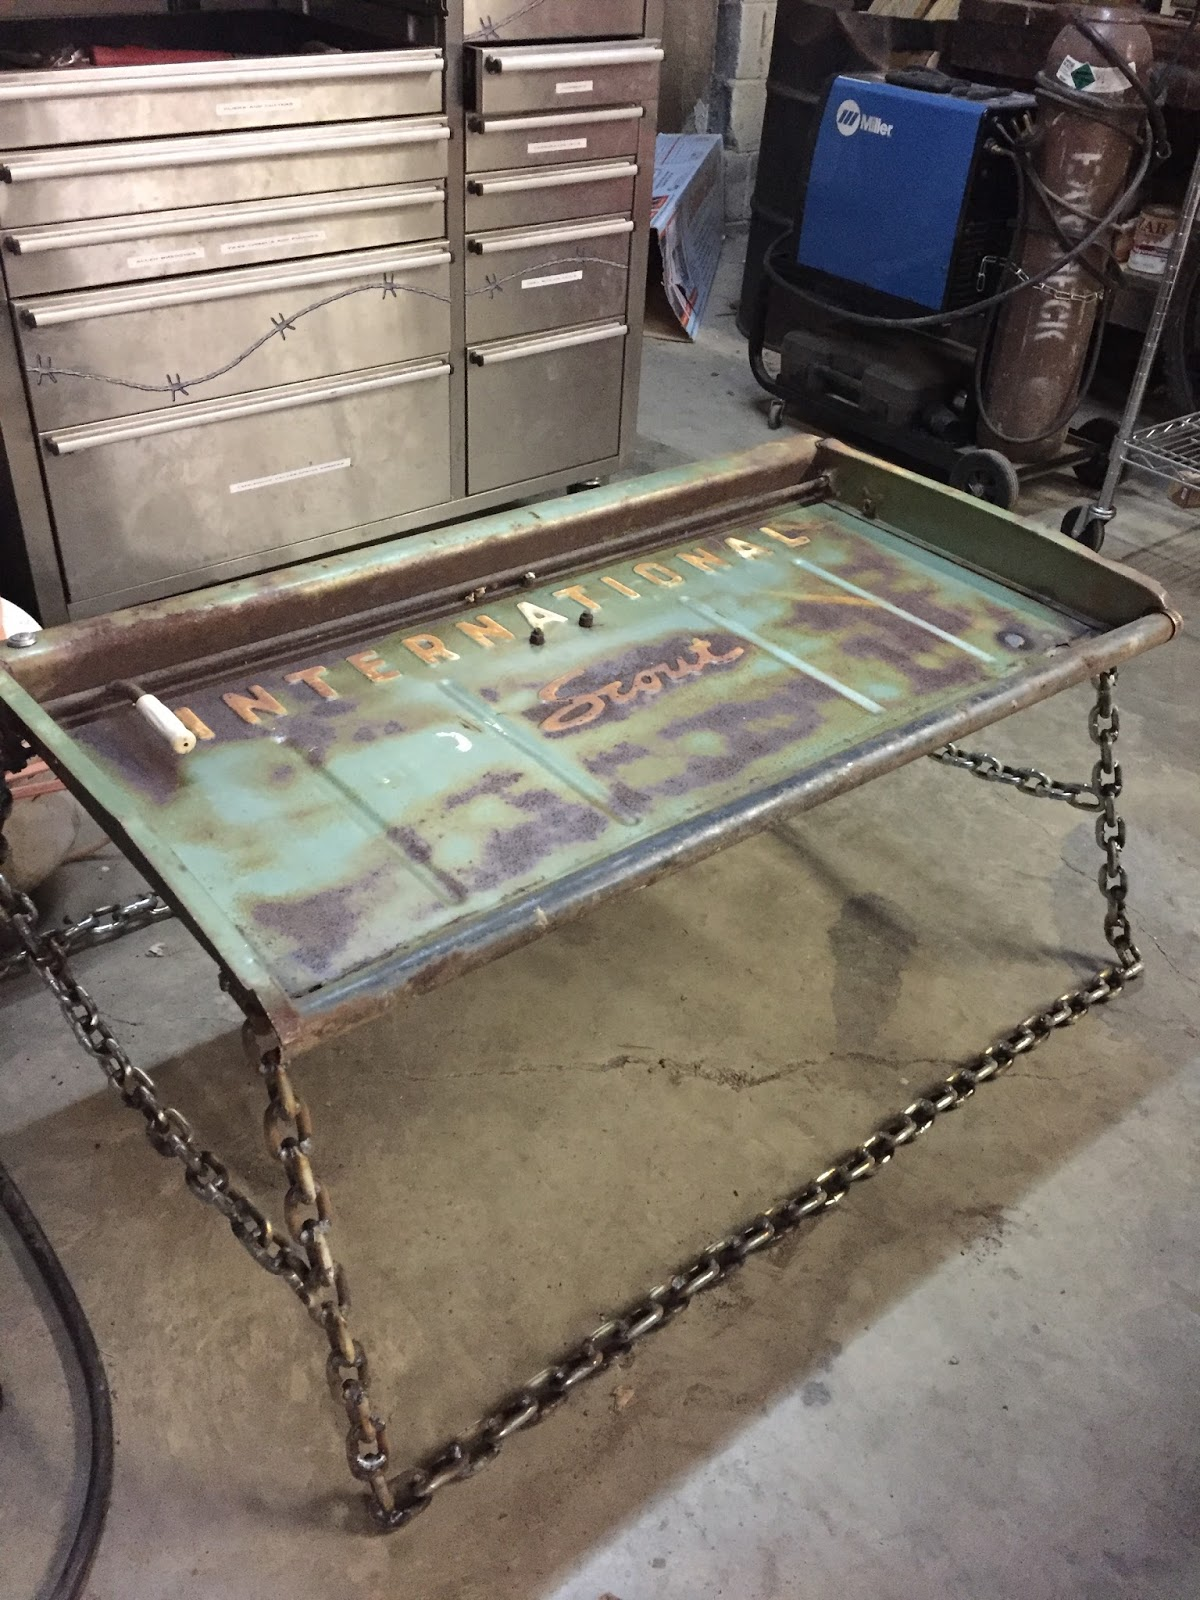 ... come up with a Christmas present for my older brother and deisel  mechanic, I decided to make a coffee table out of an old International  Scout tailgate. - Shenandoah Bicycle Company Blog: Welded Coffee Table By Dillon